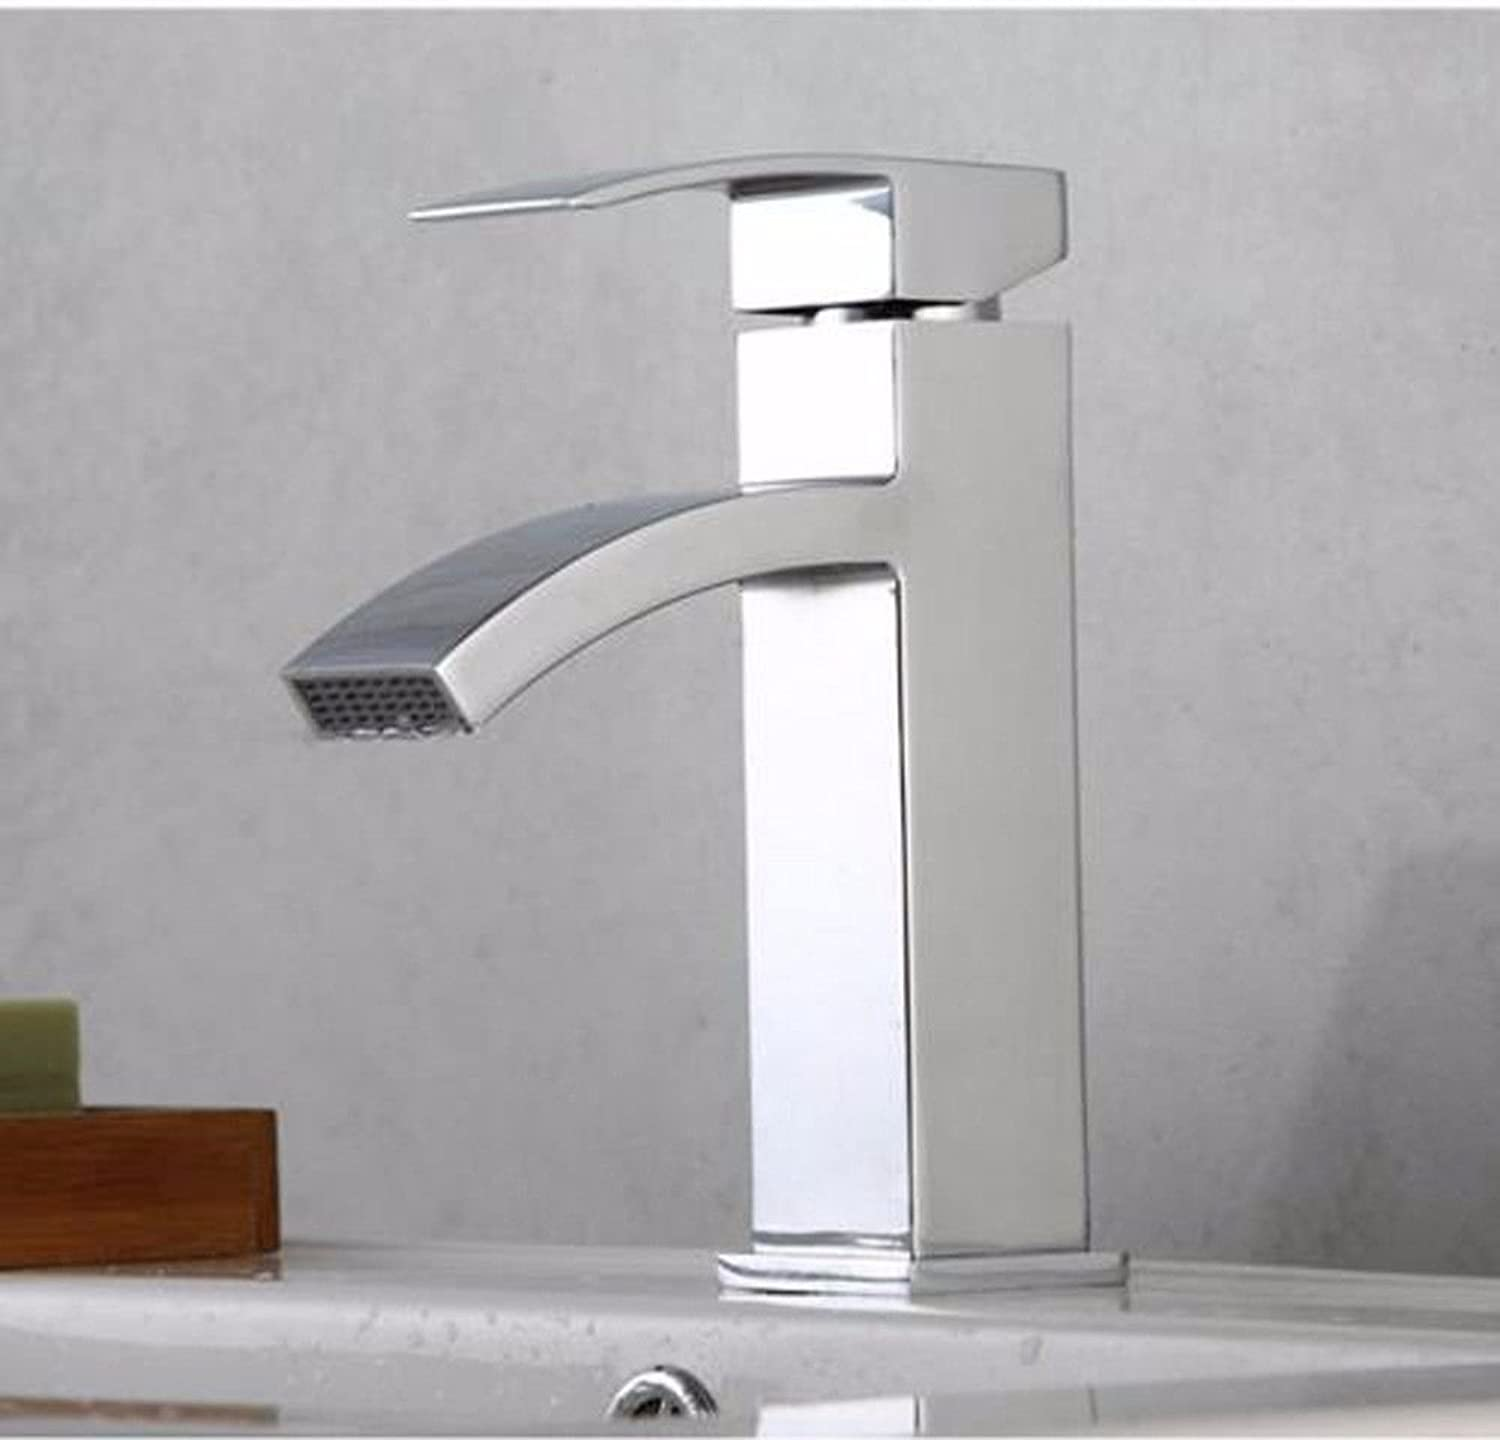 LHbox Basin Mixer Tap Bathroom Sink Faucet Hot and cold water faucets full copper basin wash basin single hole cold-hot water tap Tap art basin waterfall Faucet